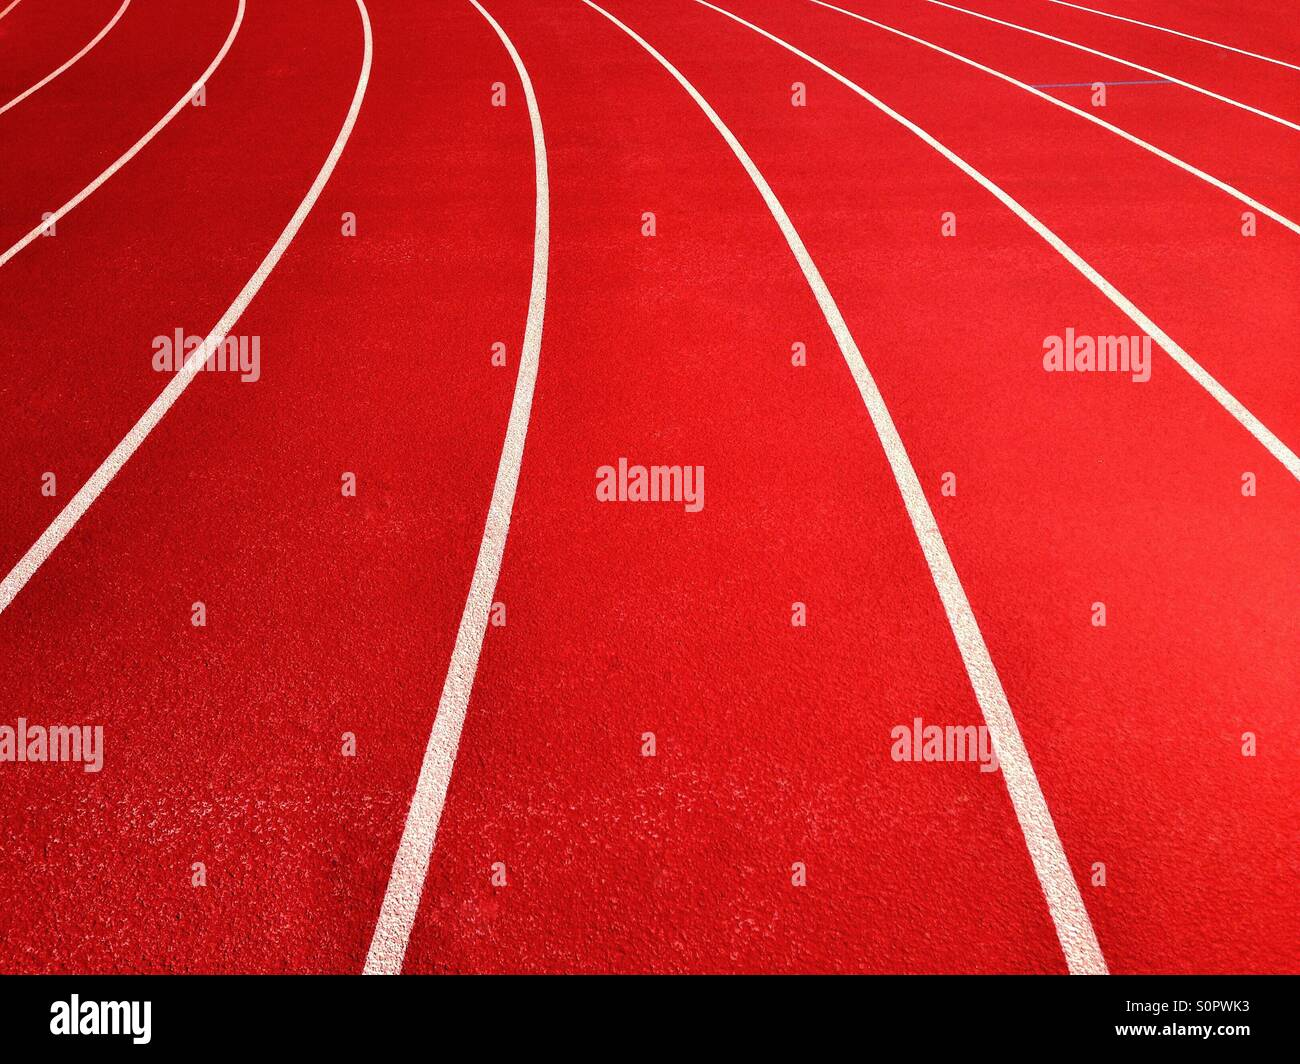 Lines on running track on sports field - Stock Image